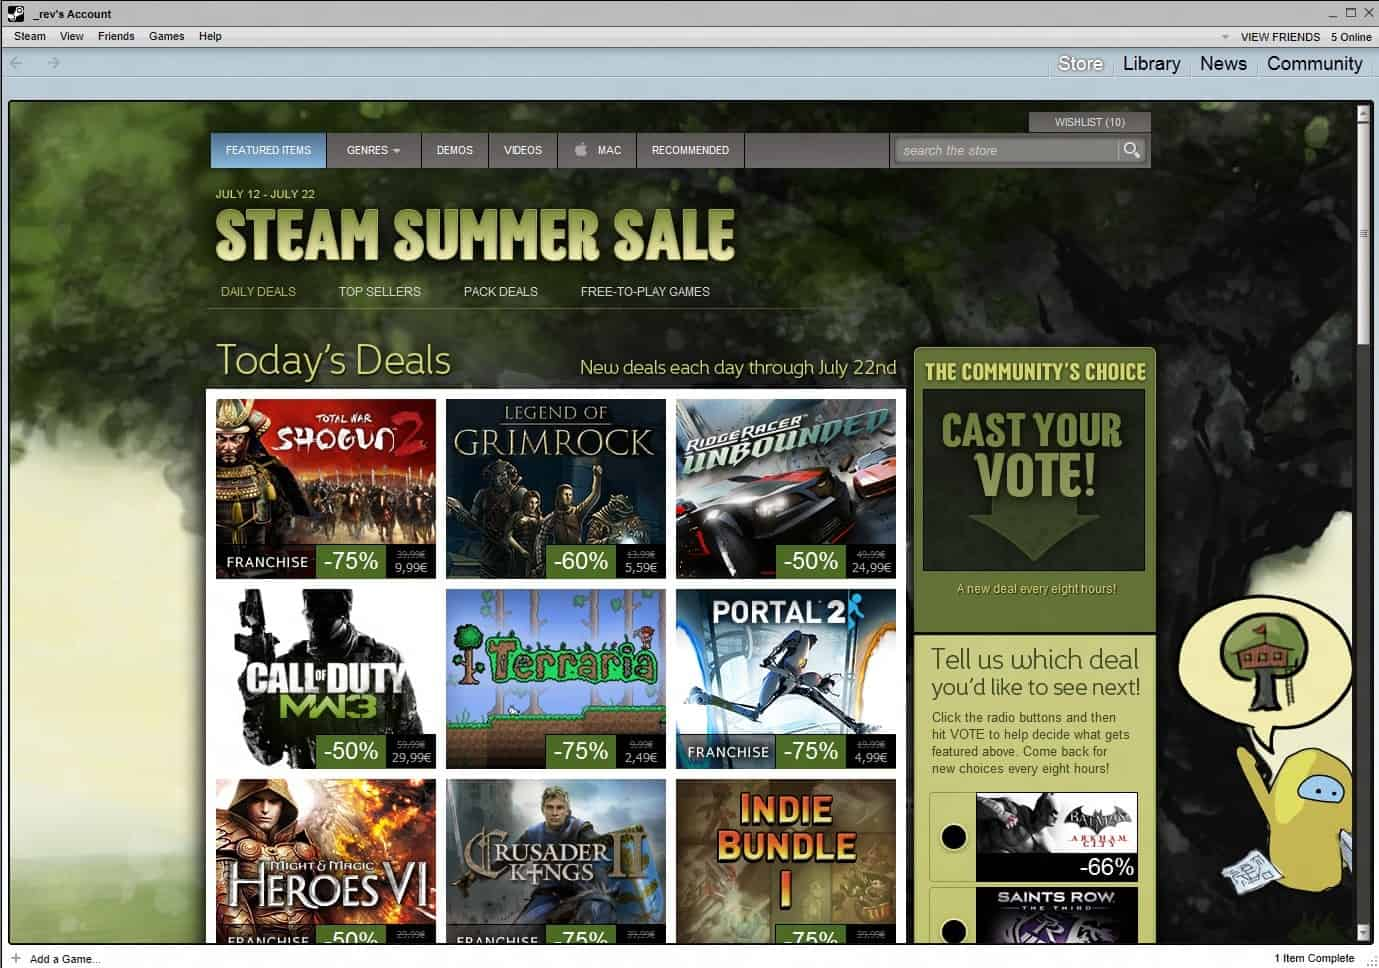 Steam Summer Sale 2017 tips